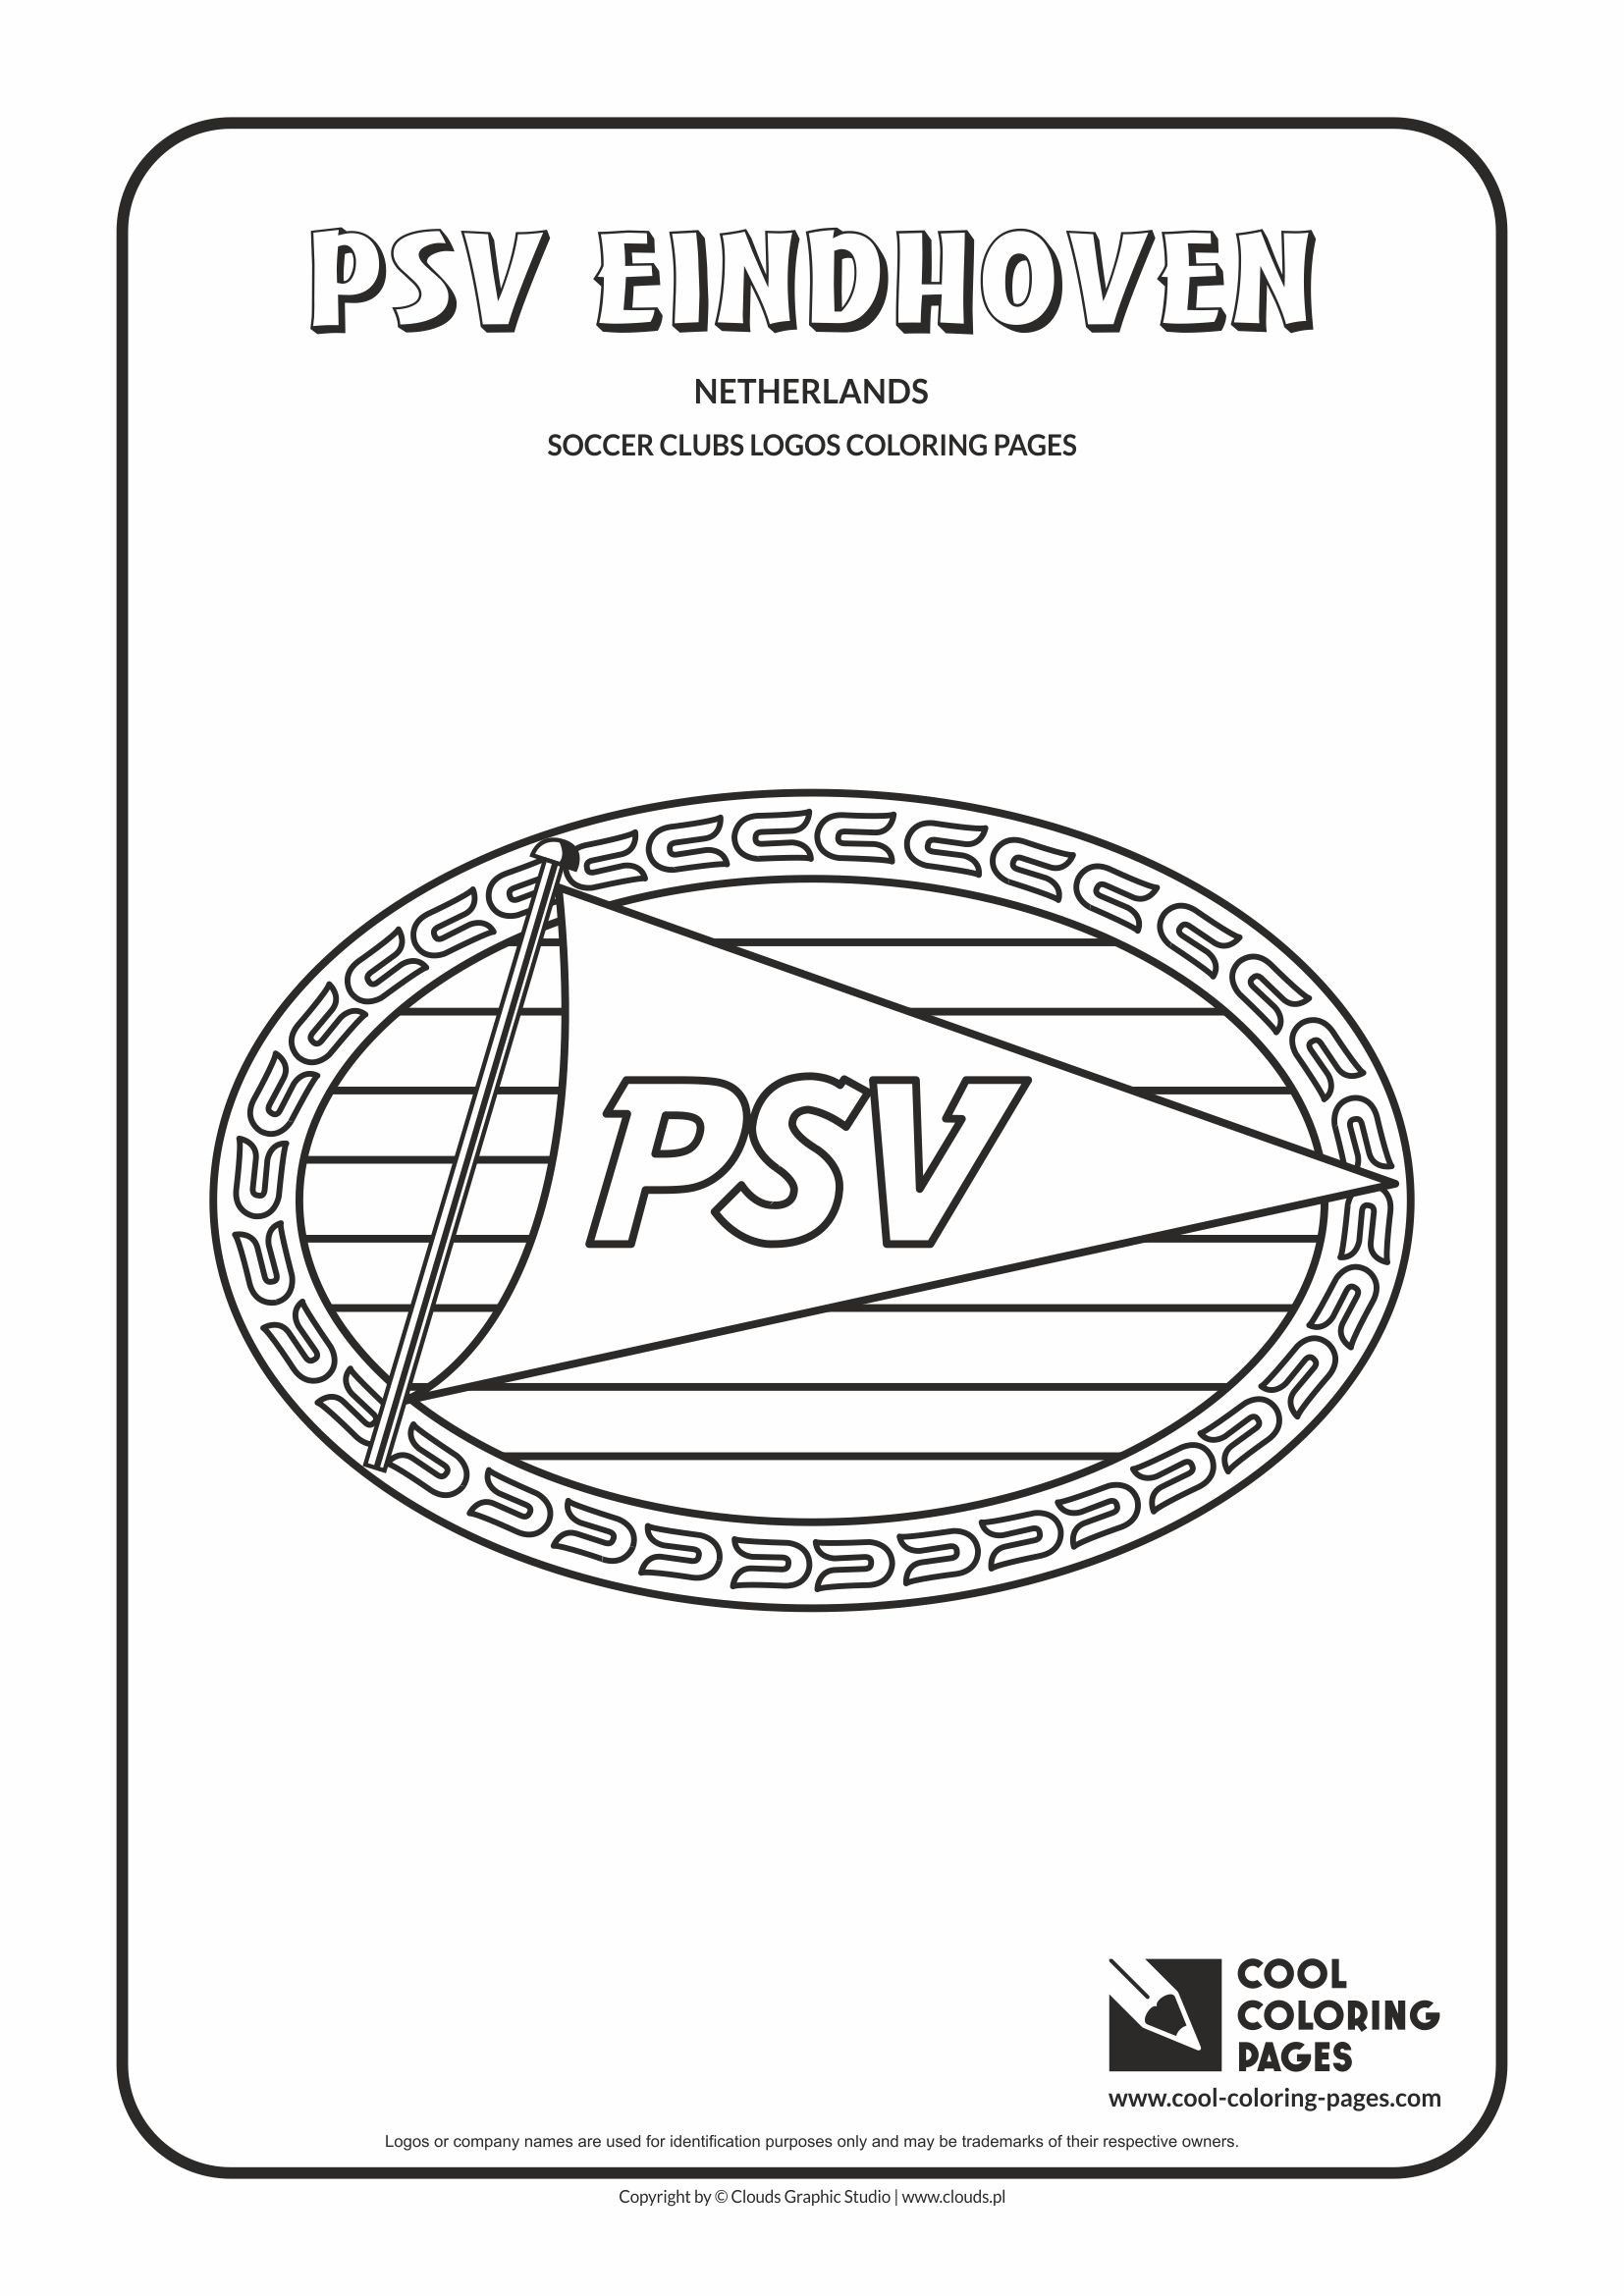 Cool Coloring Pages PSV Eindhoven Logo Coloring Page